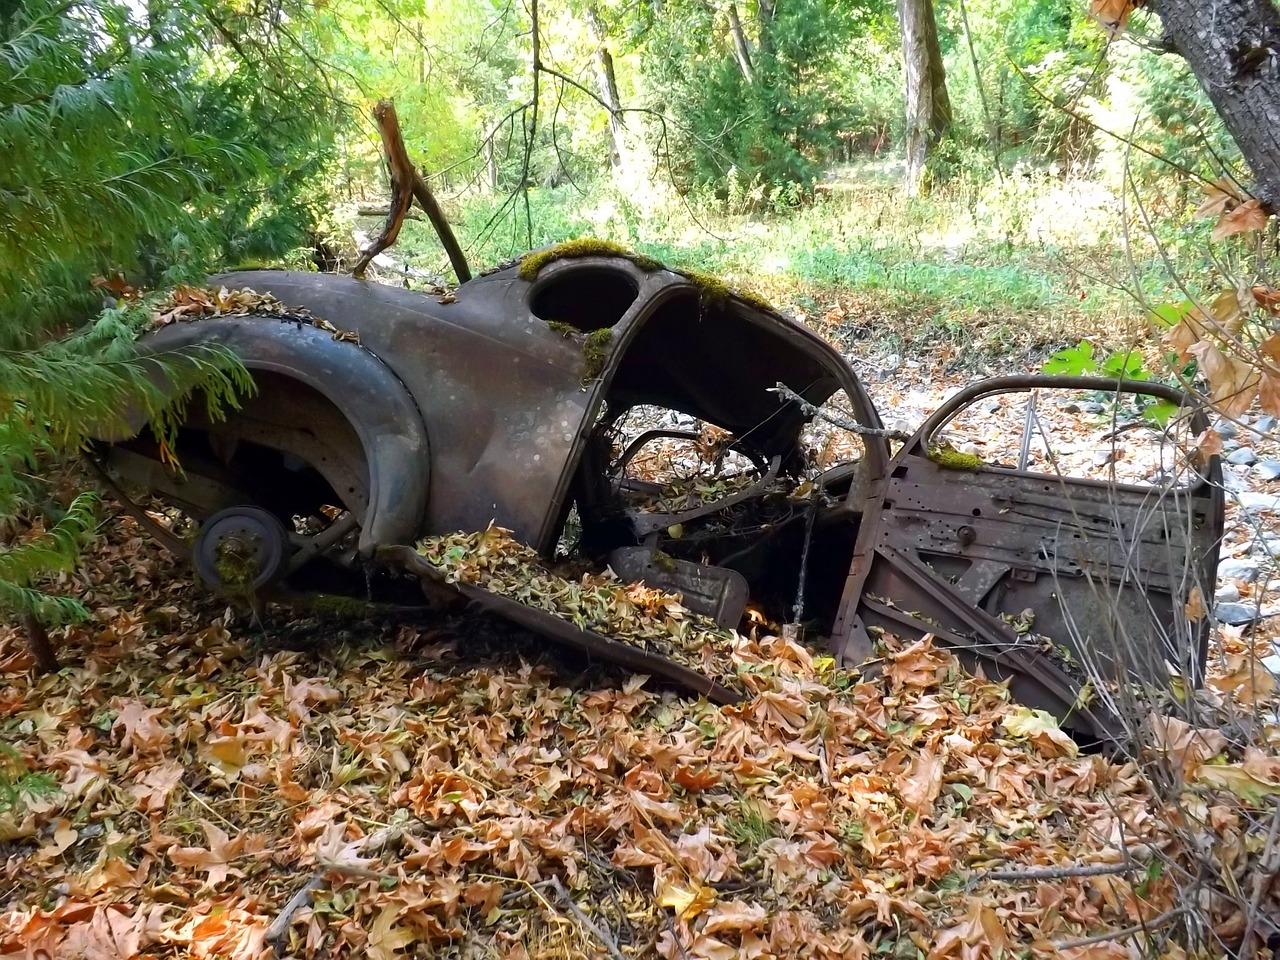 Car Abandoned Rusted - Free photo on Pixabay